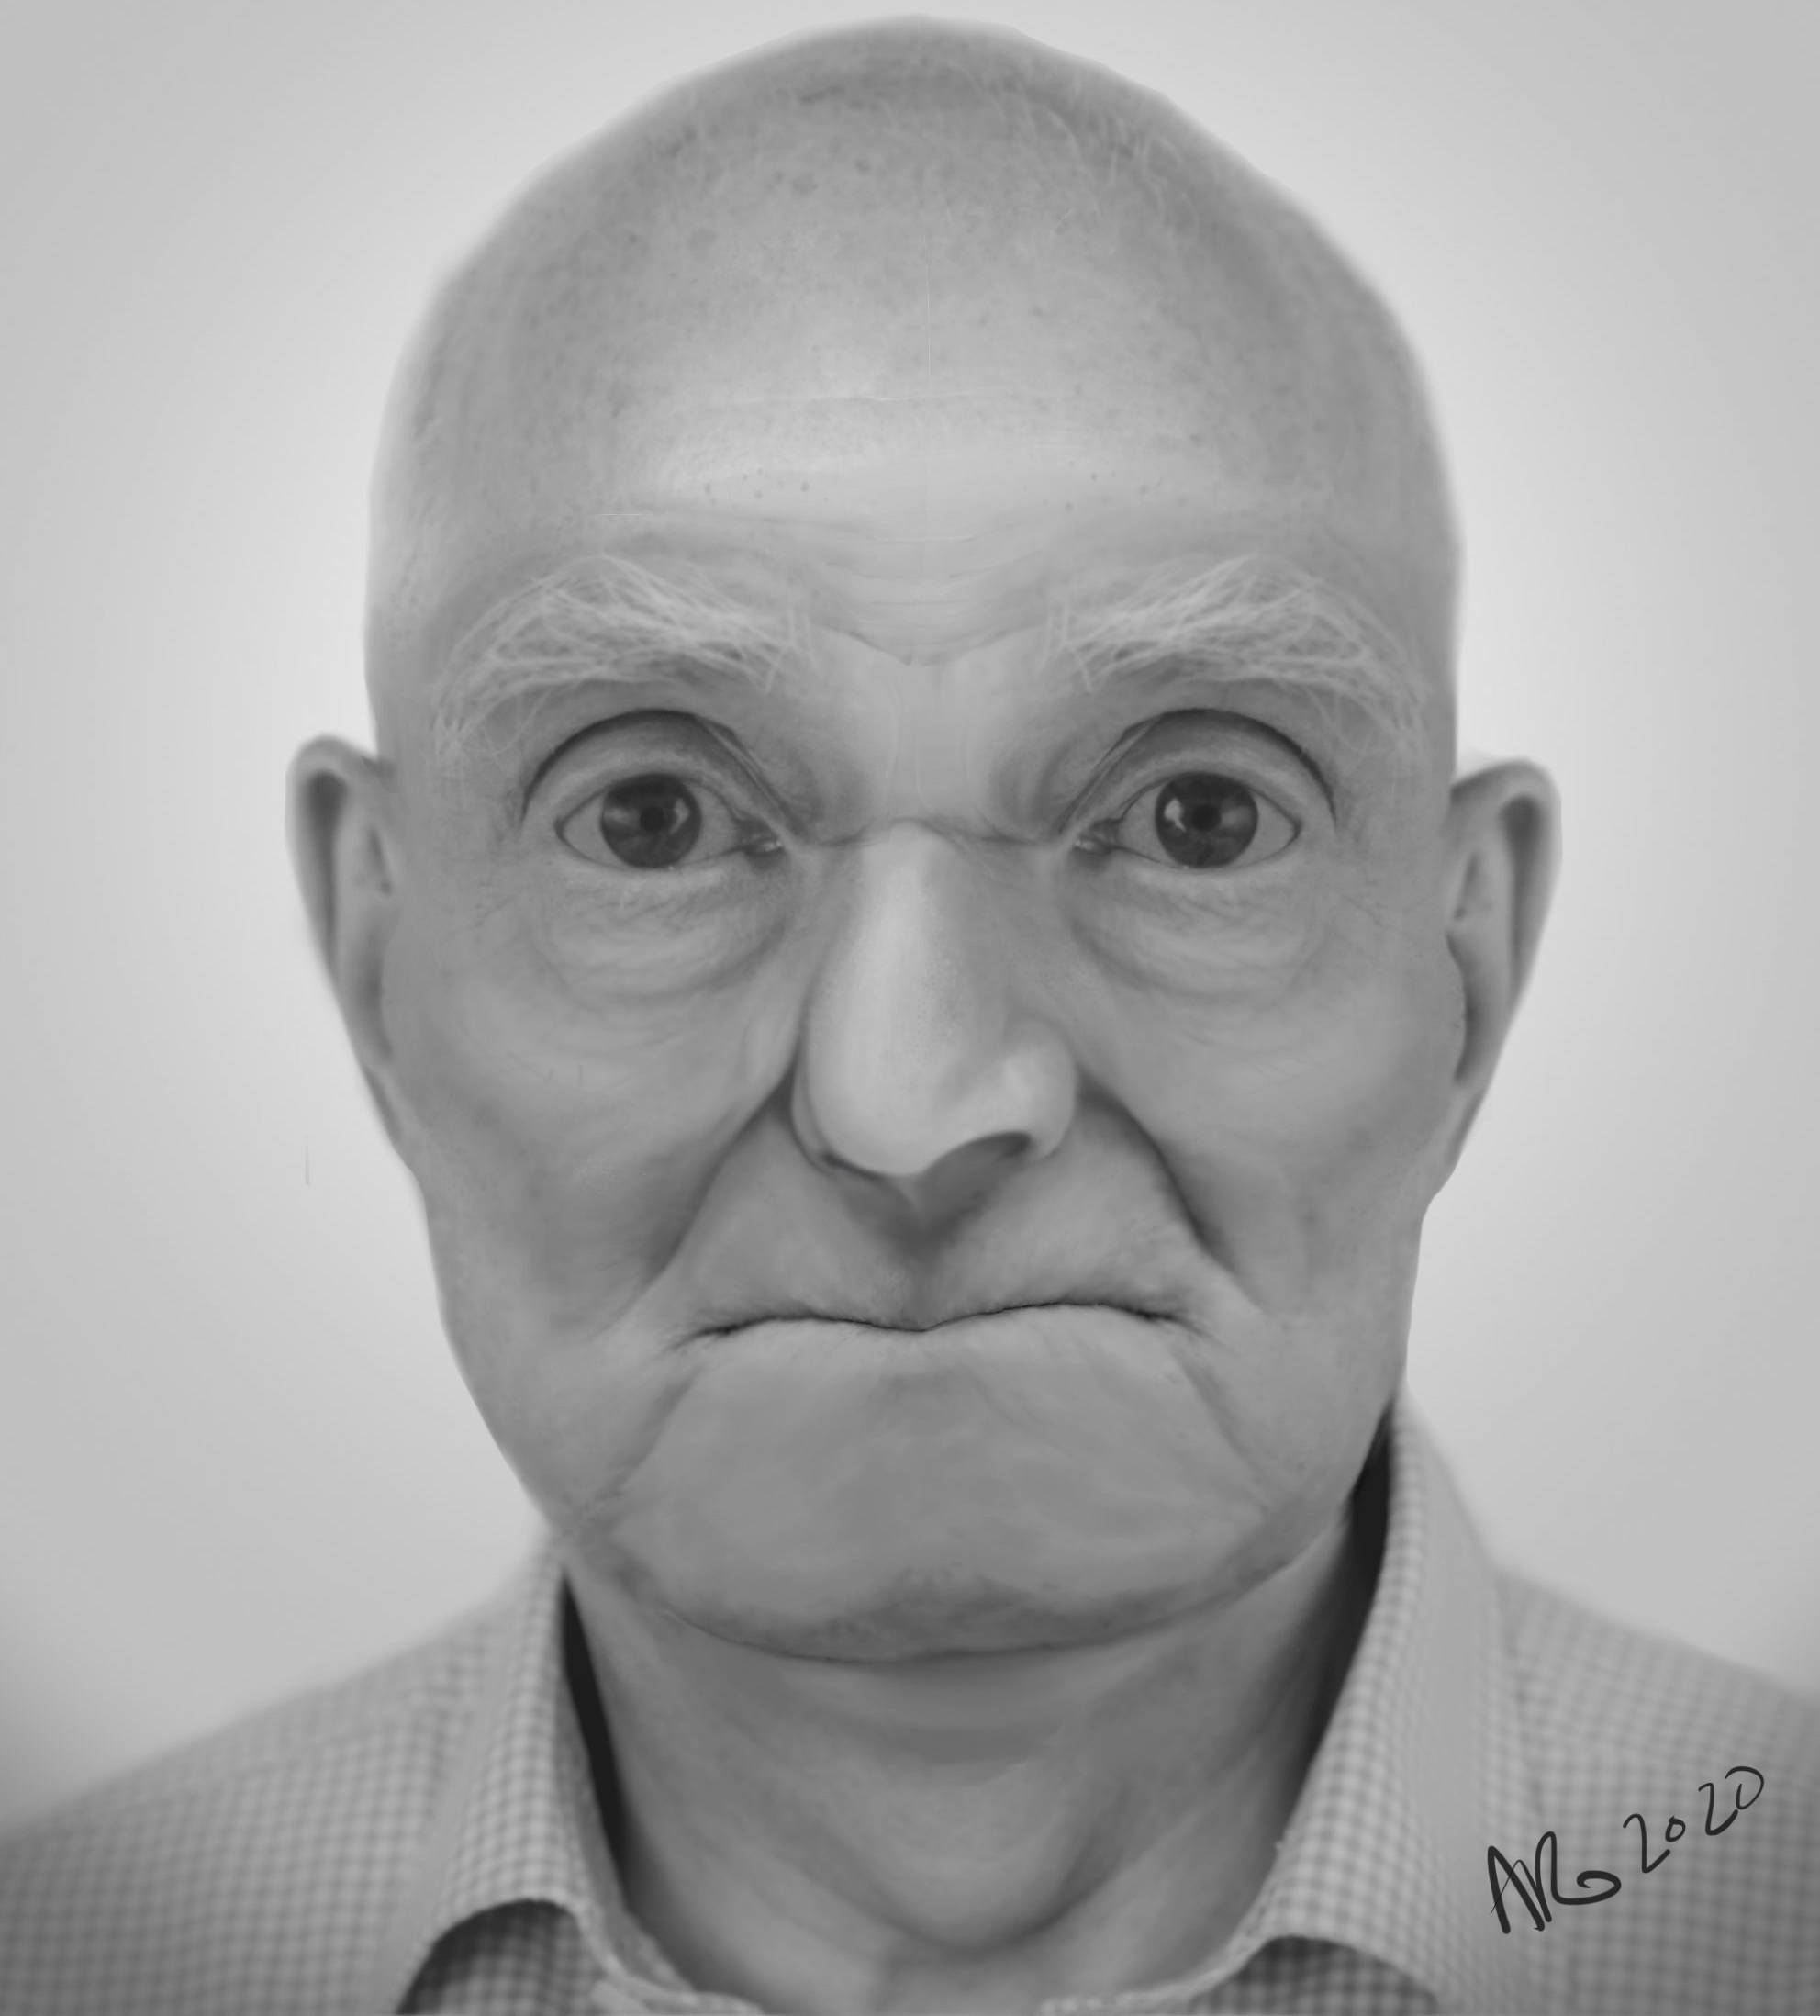 Cape Girardeau County John Doe (1980)